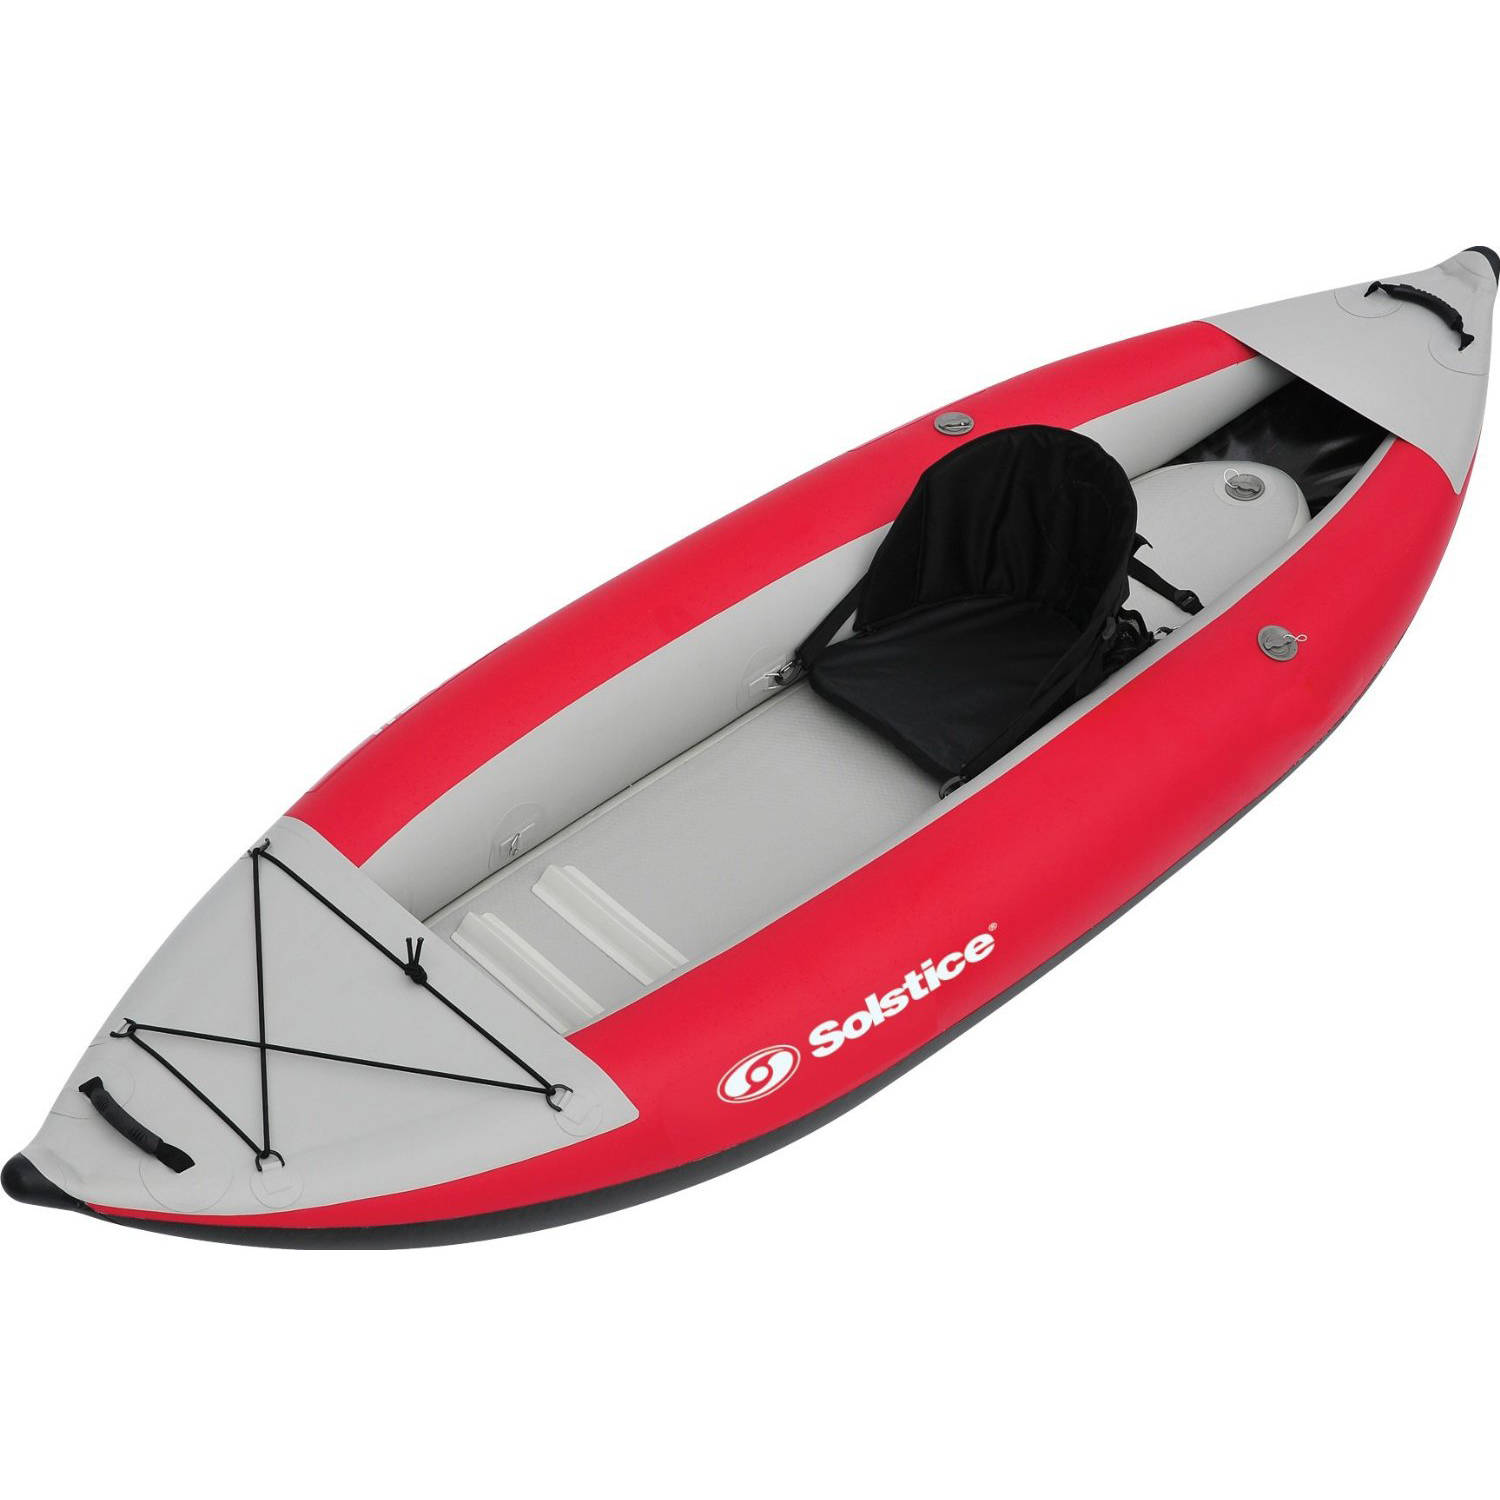 Solstice Flare 1-Person Kayak